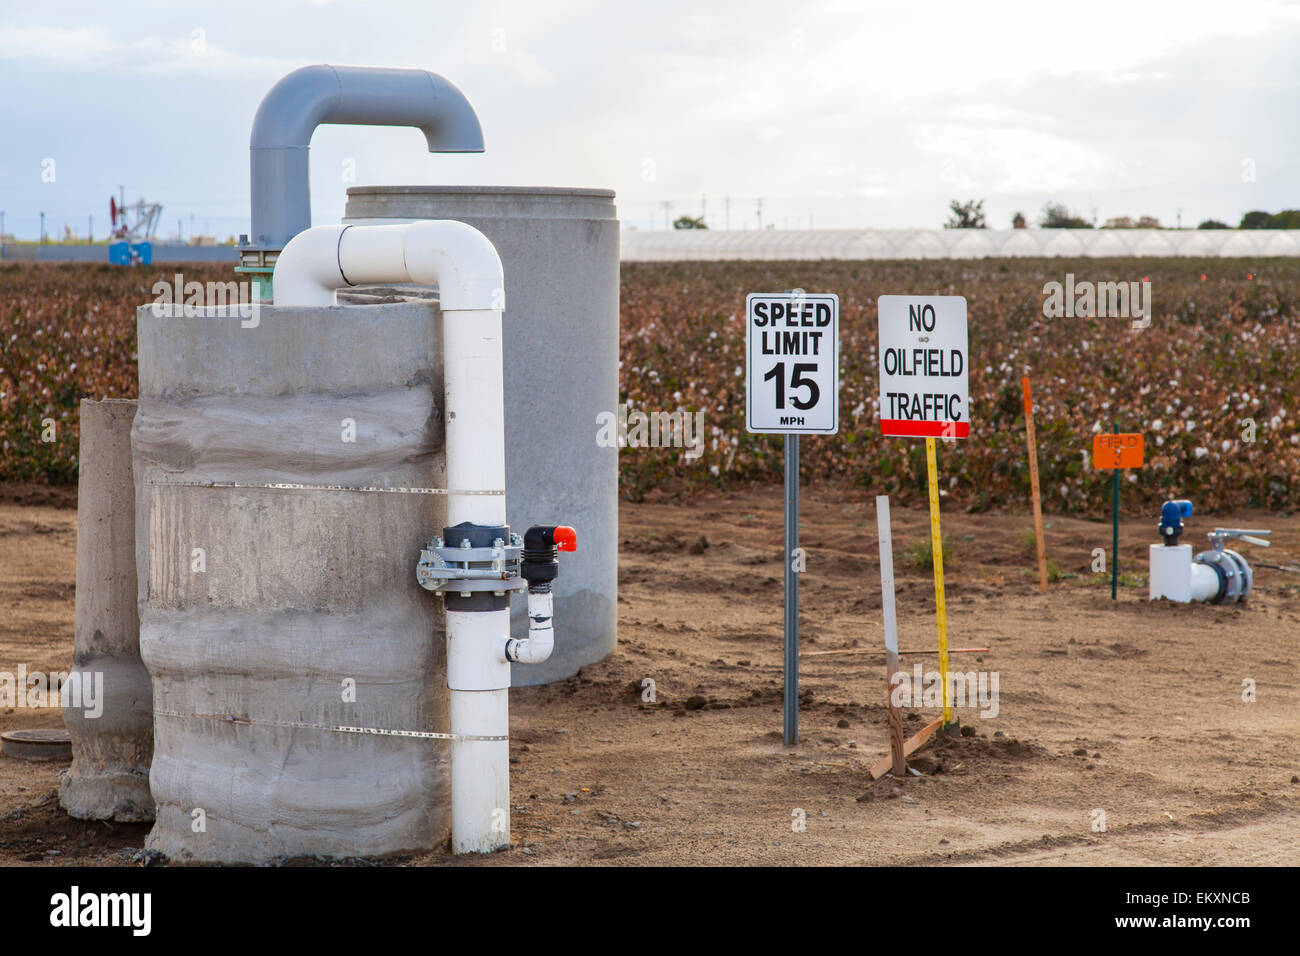 No oilfield traffic sign next to groundwater well with oil well pumpjack, Shafter. Kern County, California - Stock Image